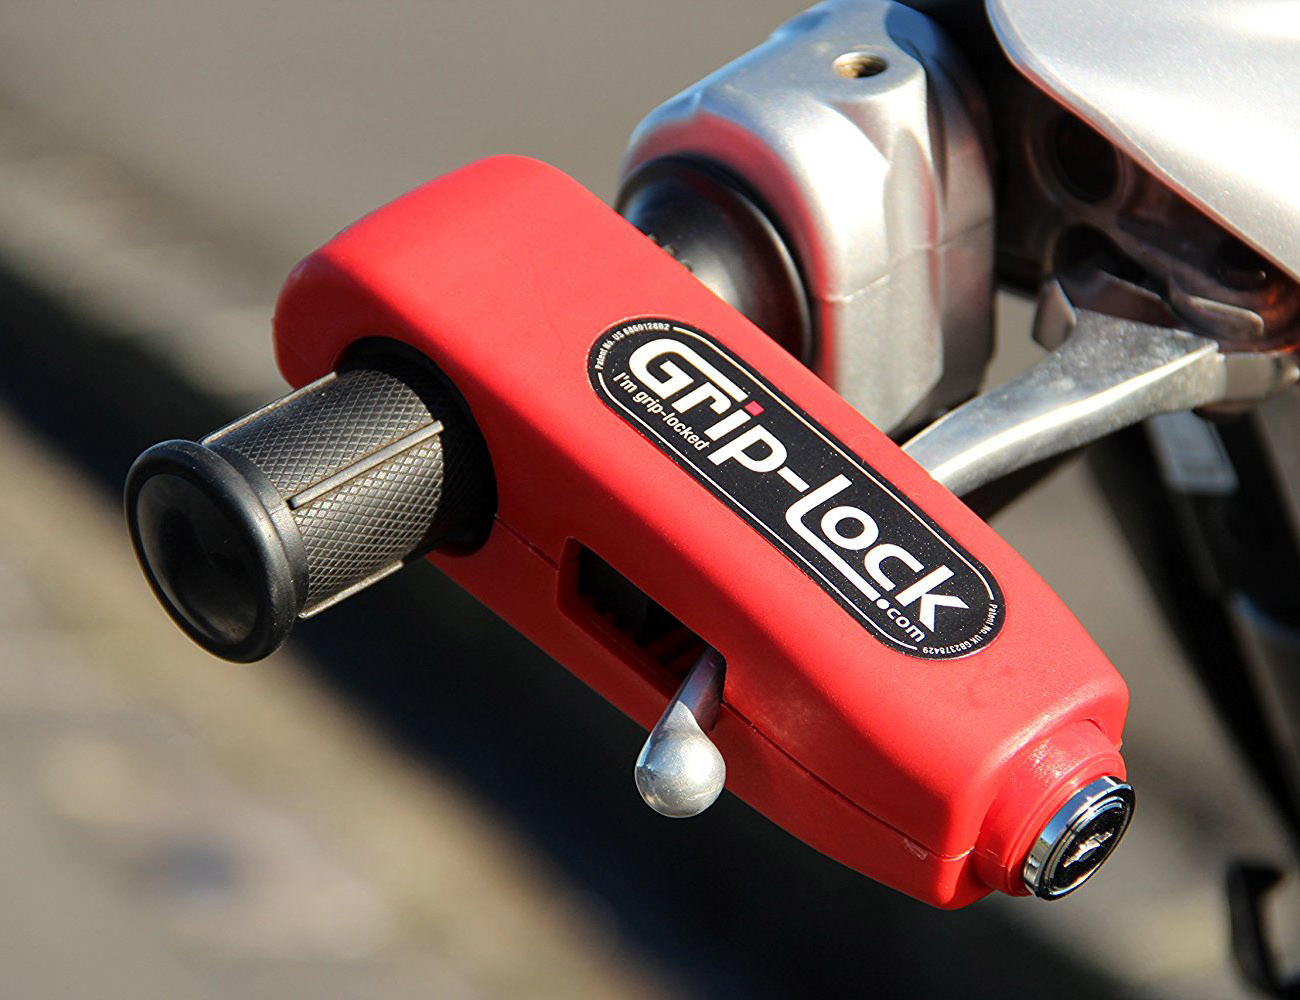 Grip-lock Motorcycle and Scooter Security Lock